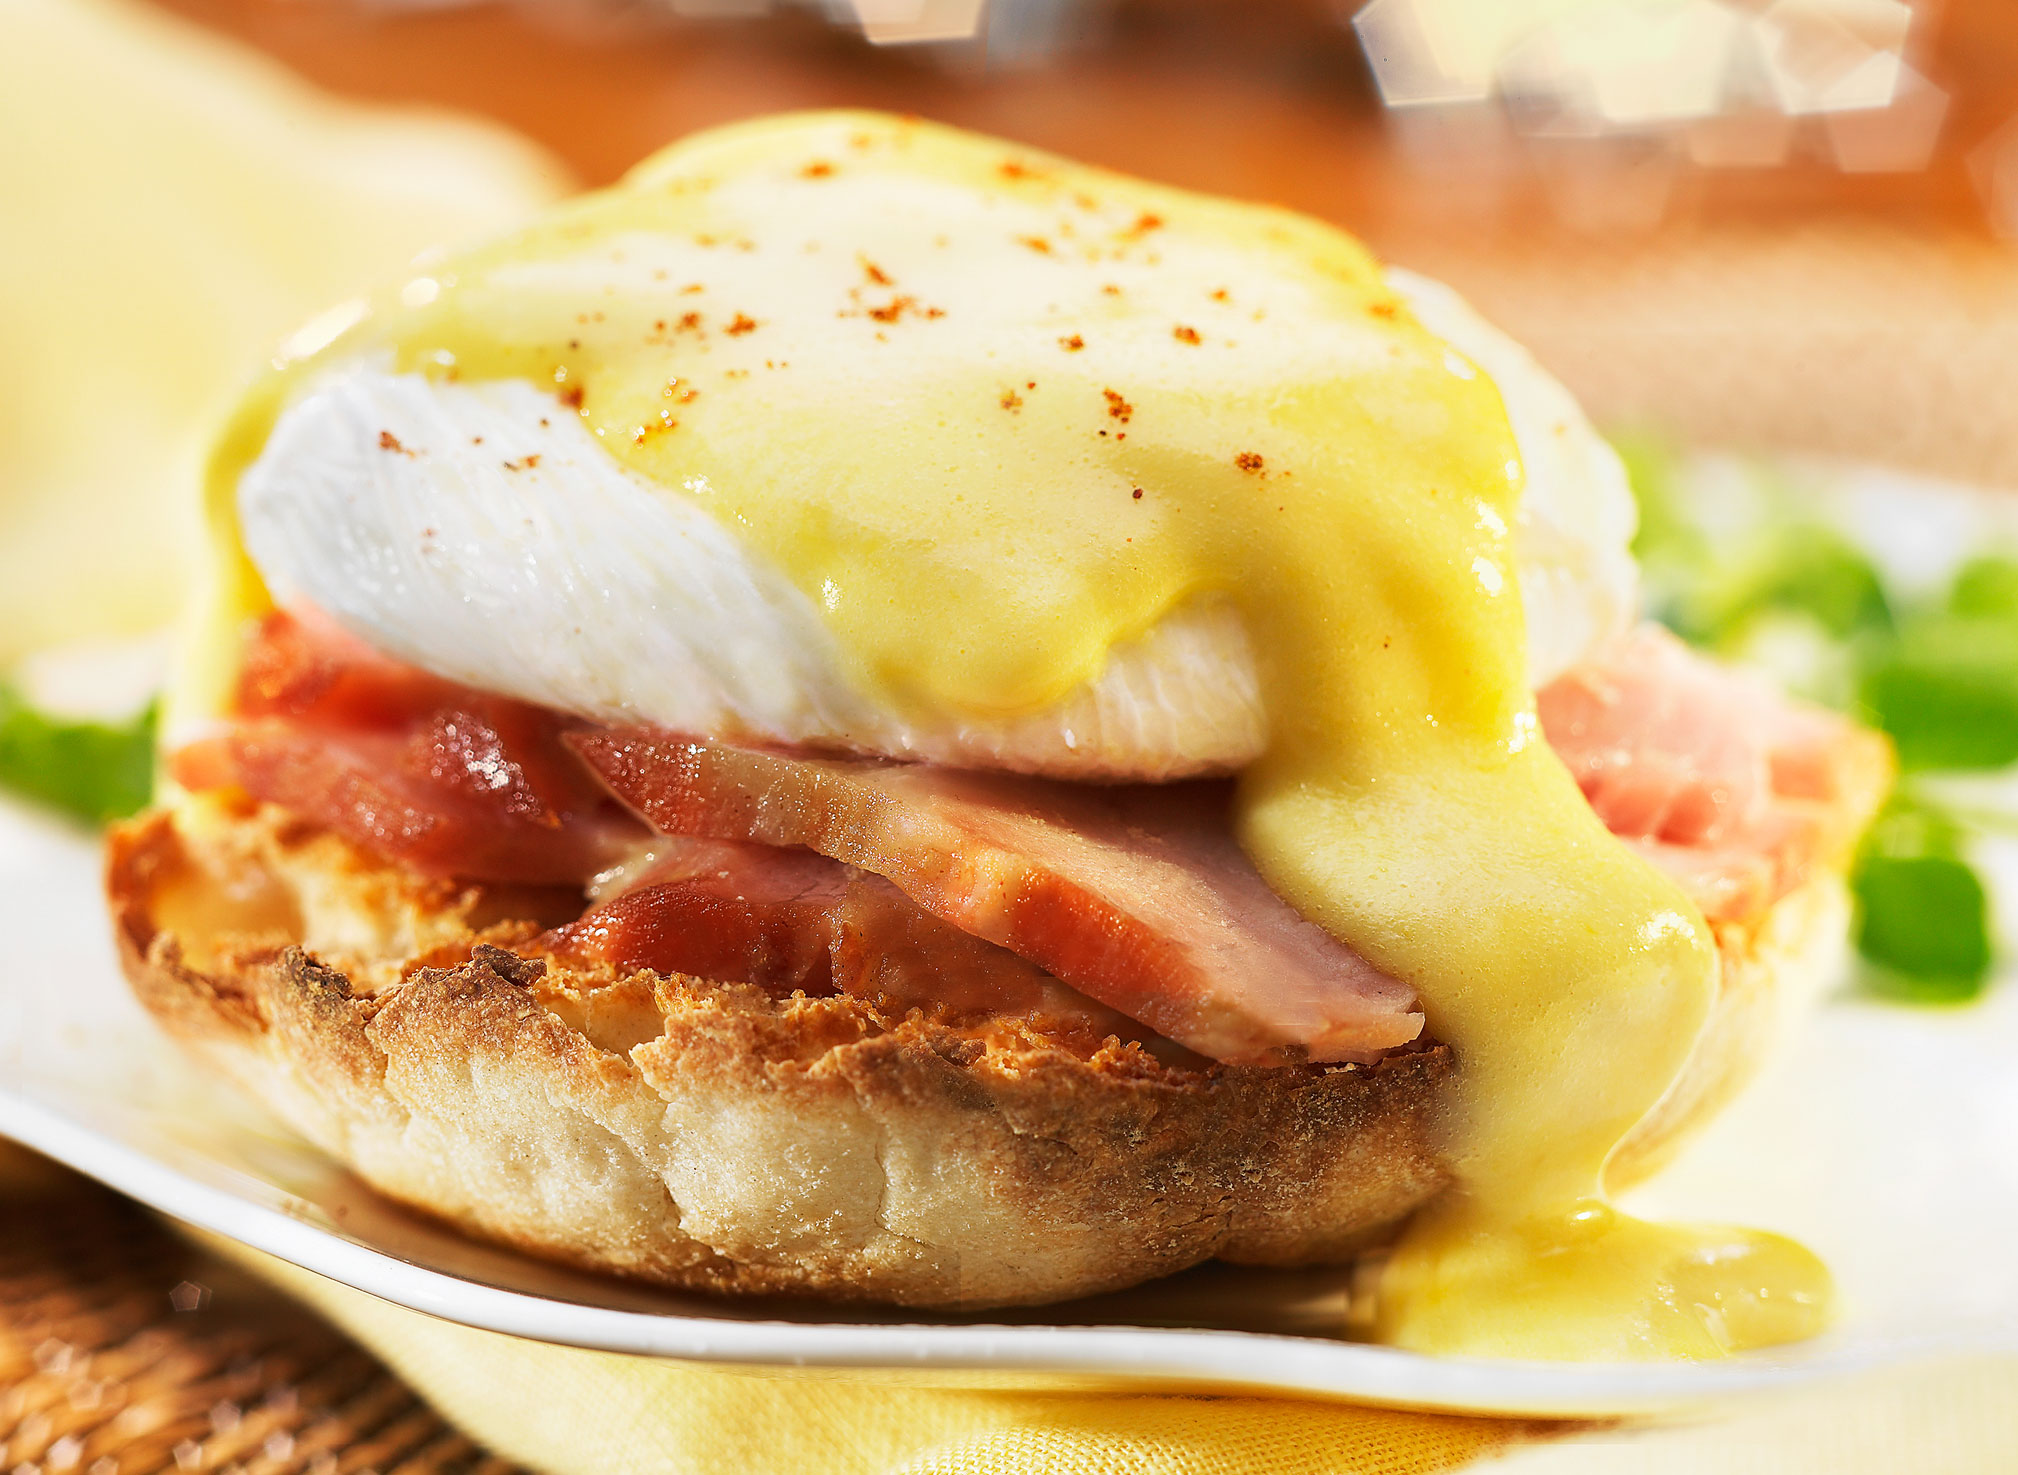 Glasshouse Assignment - David Bishop - Food Photography - Eggs Benedict